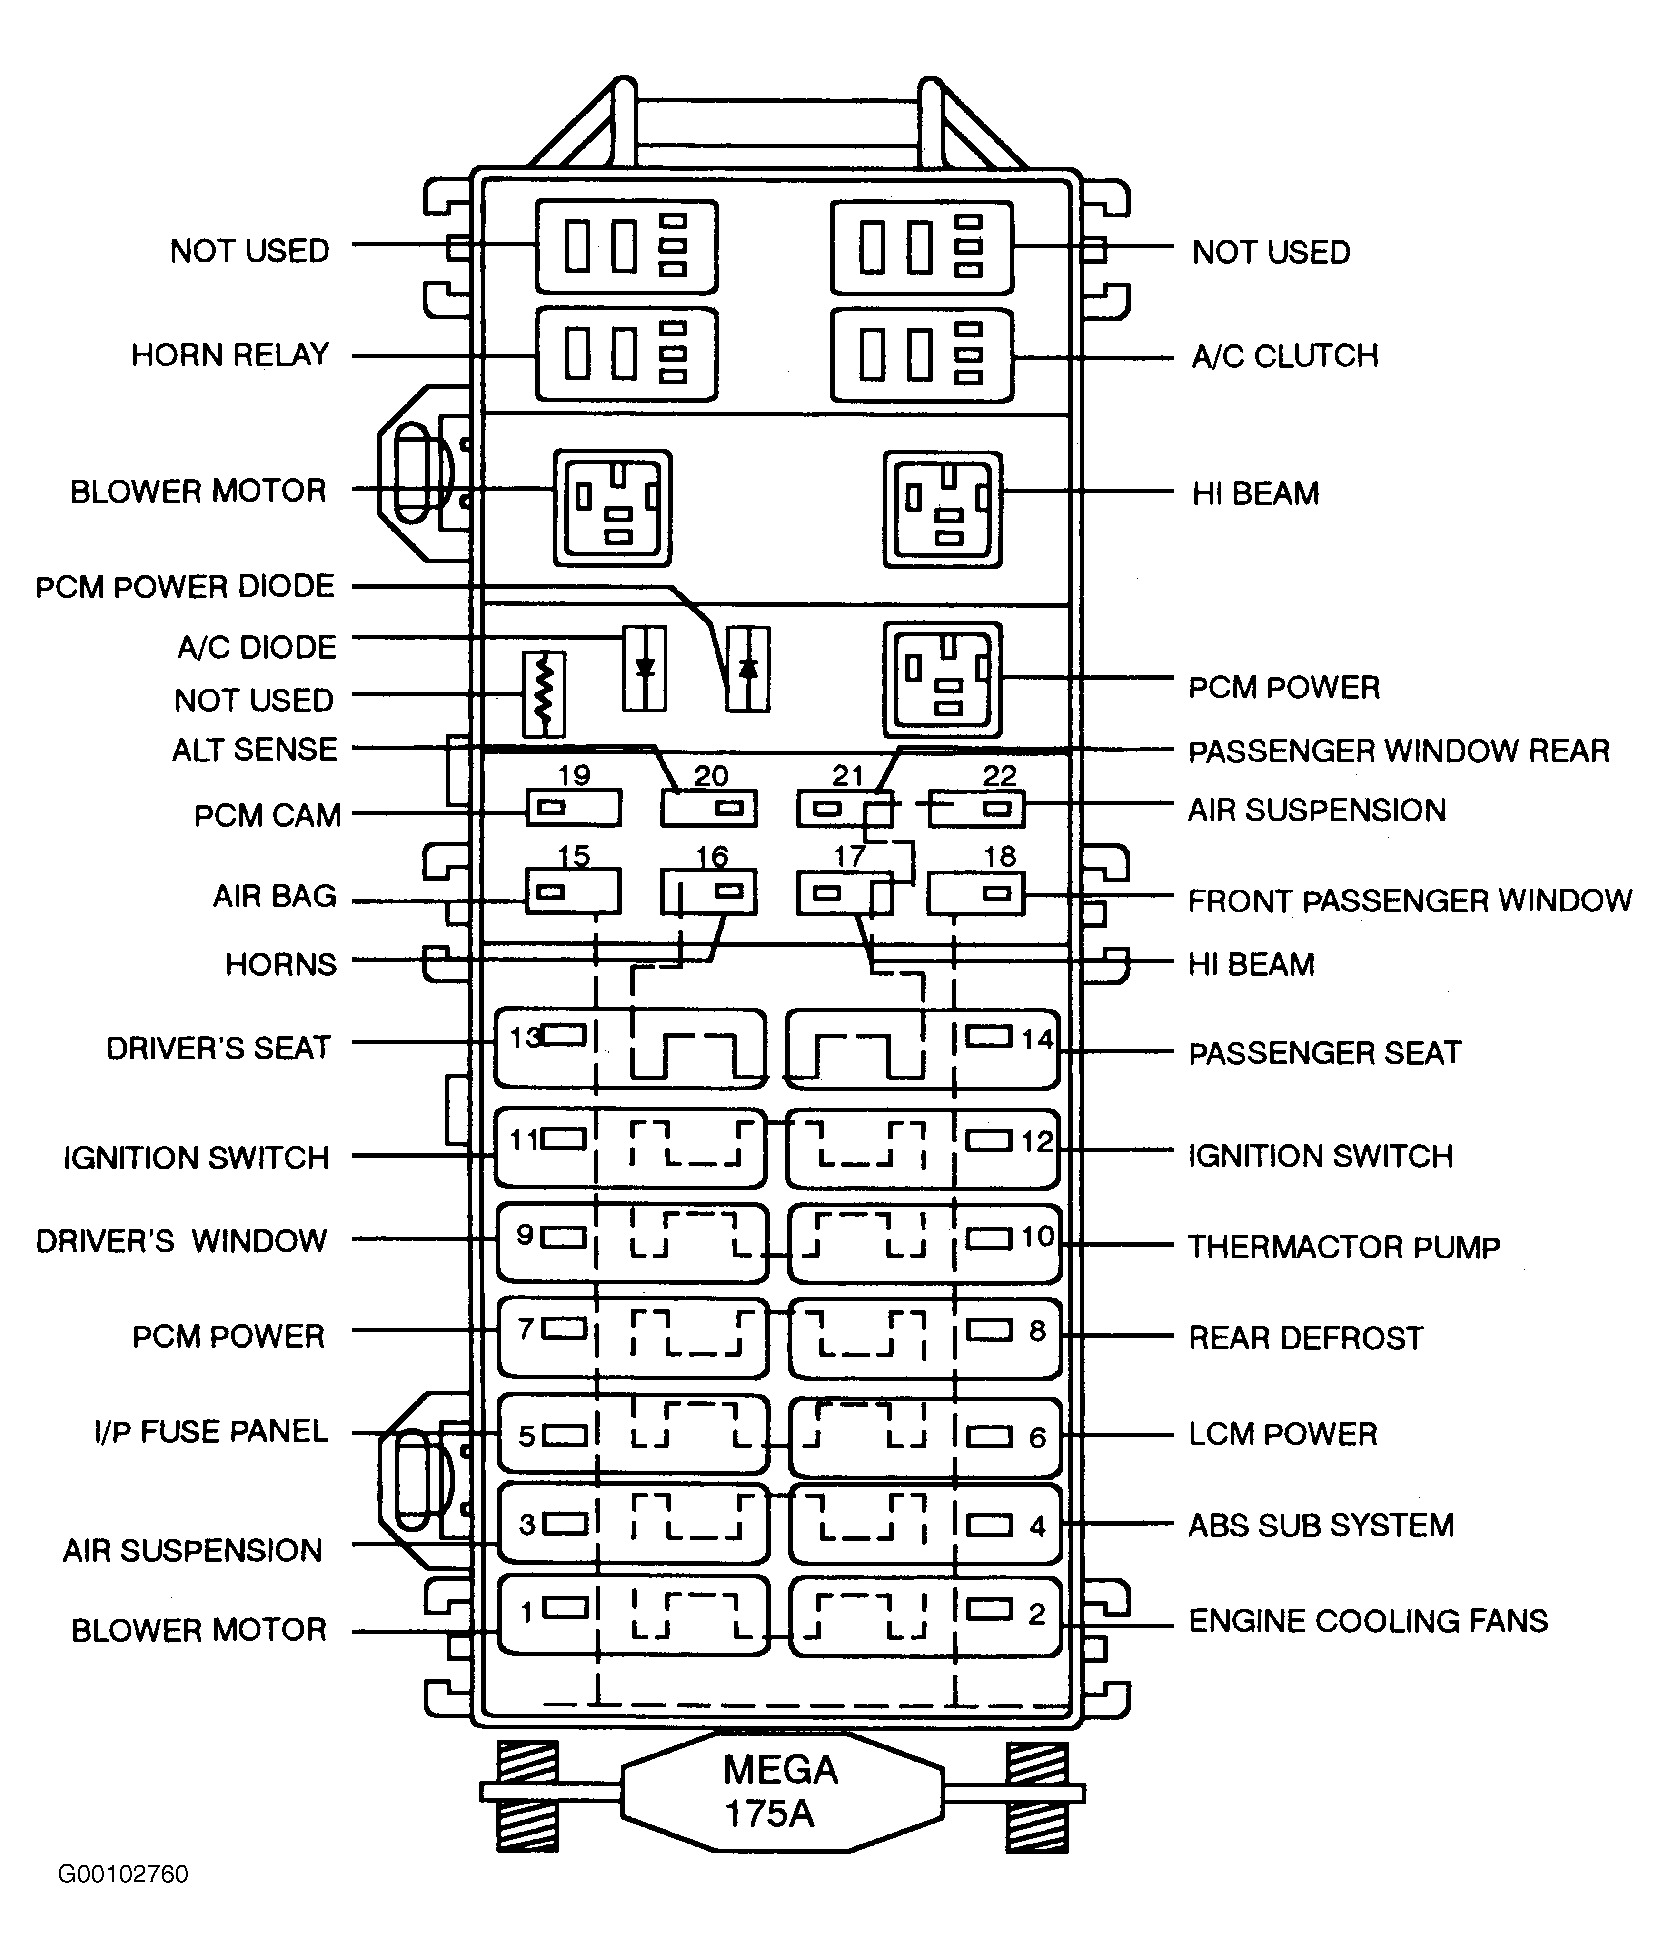 1997 Lincoln Continental Fuse Box Diagram on 97 grand marquis radio wiring